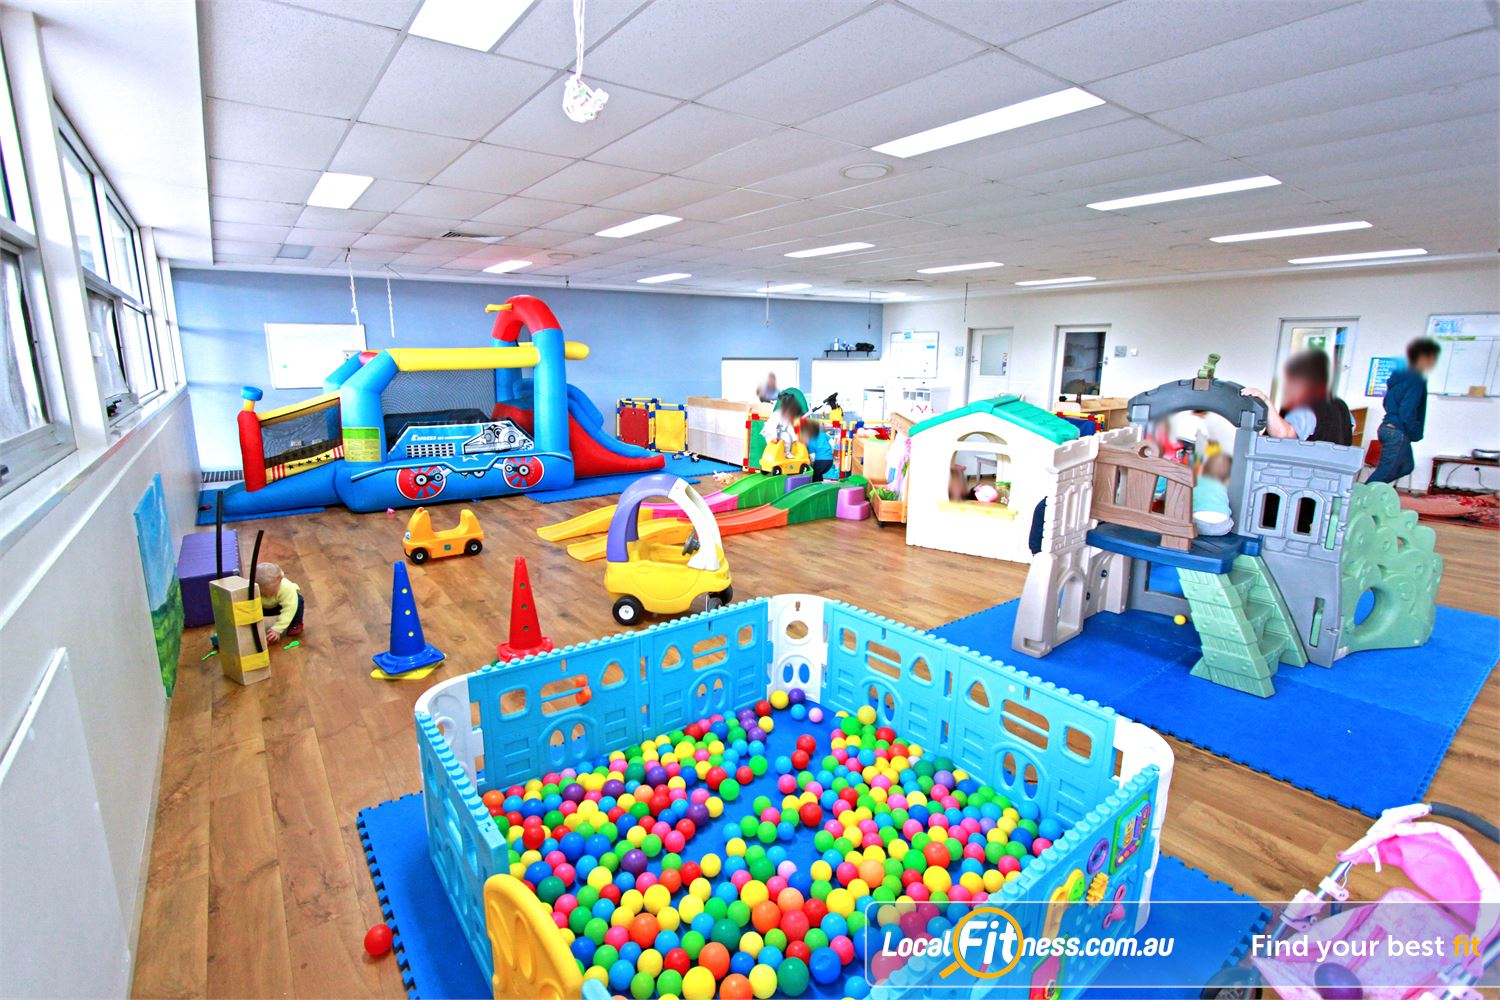 Casey Arc Narre Warren On-site Narre Warren child minding while you train or shop.